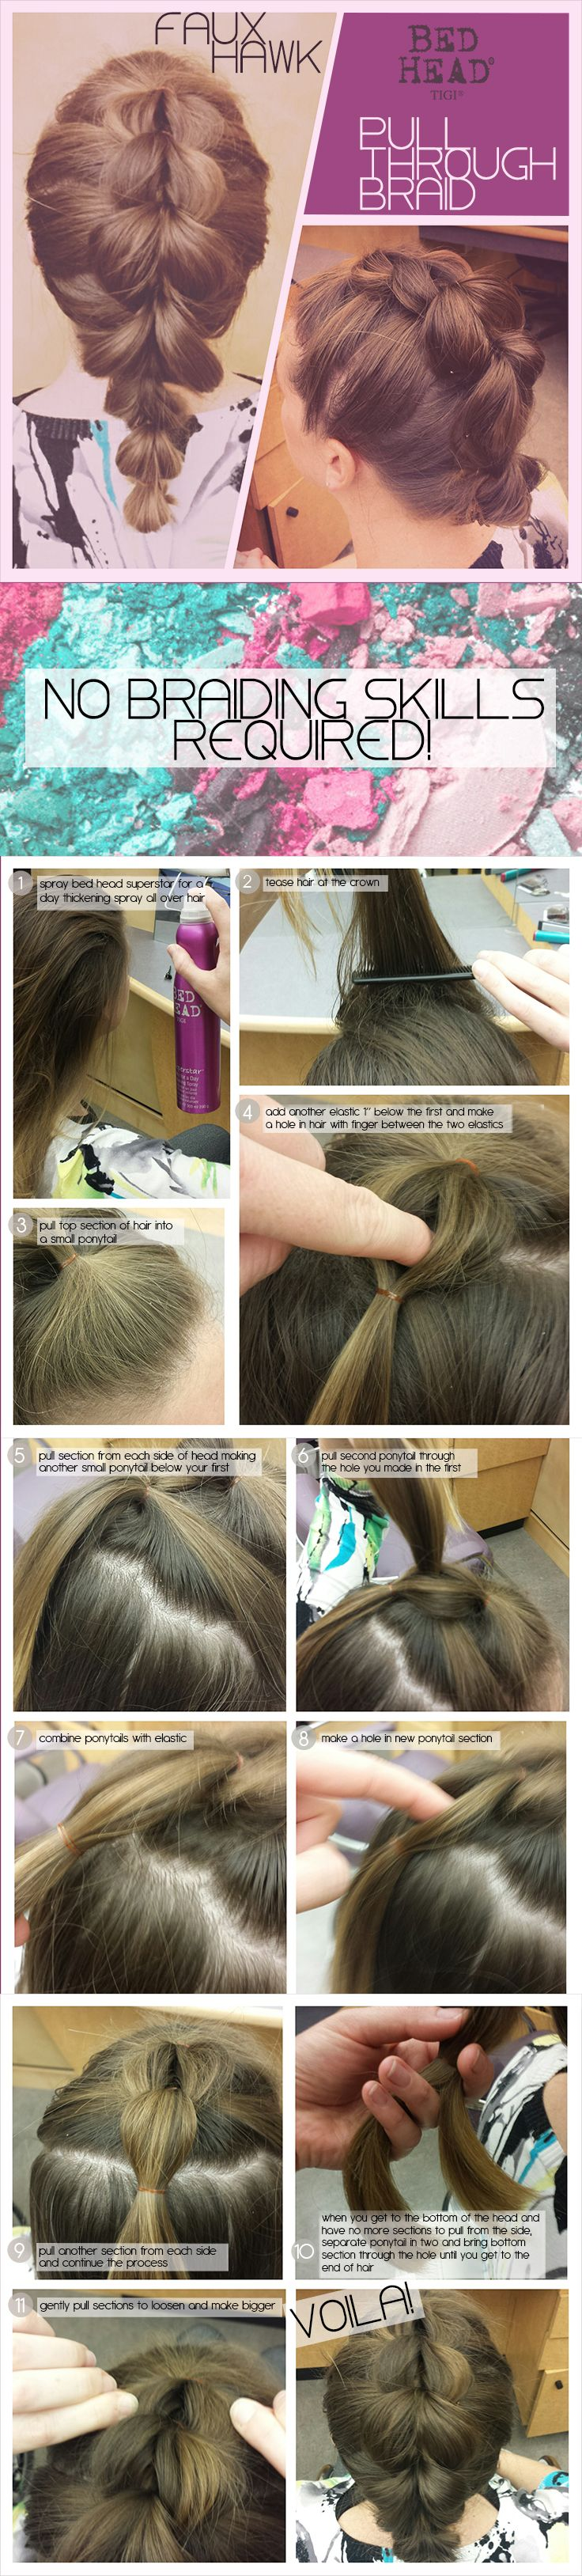 A pull through braid is perfect for people who are braidchallenged